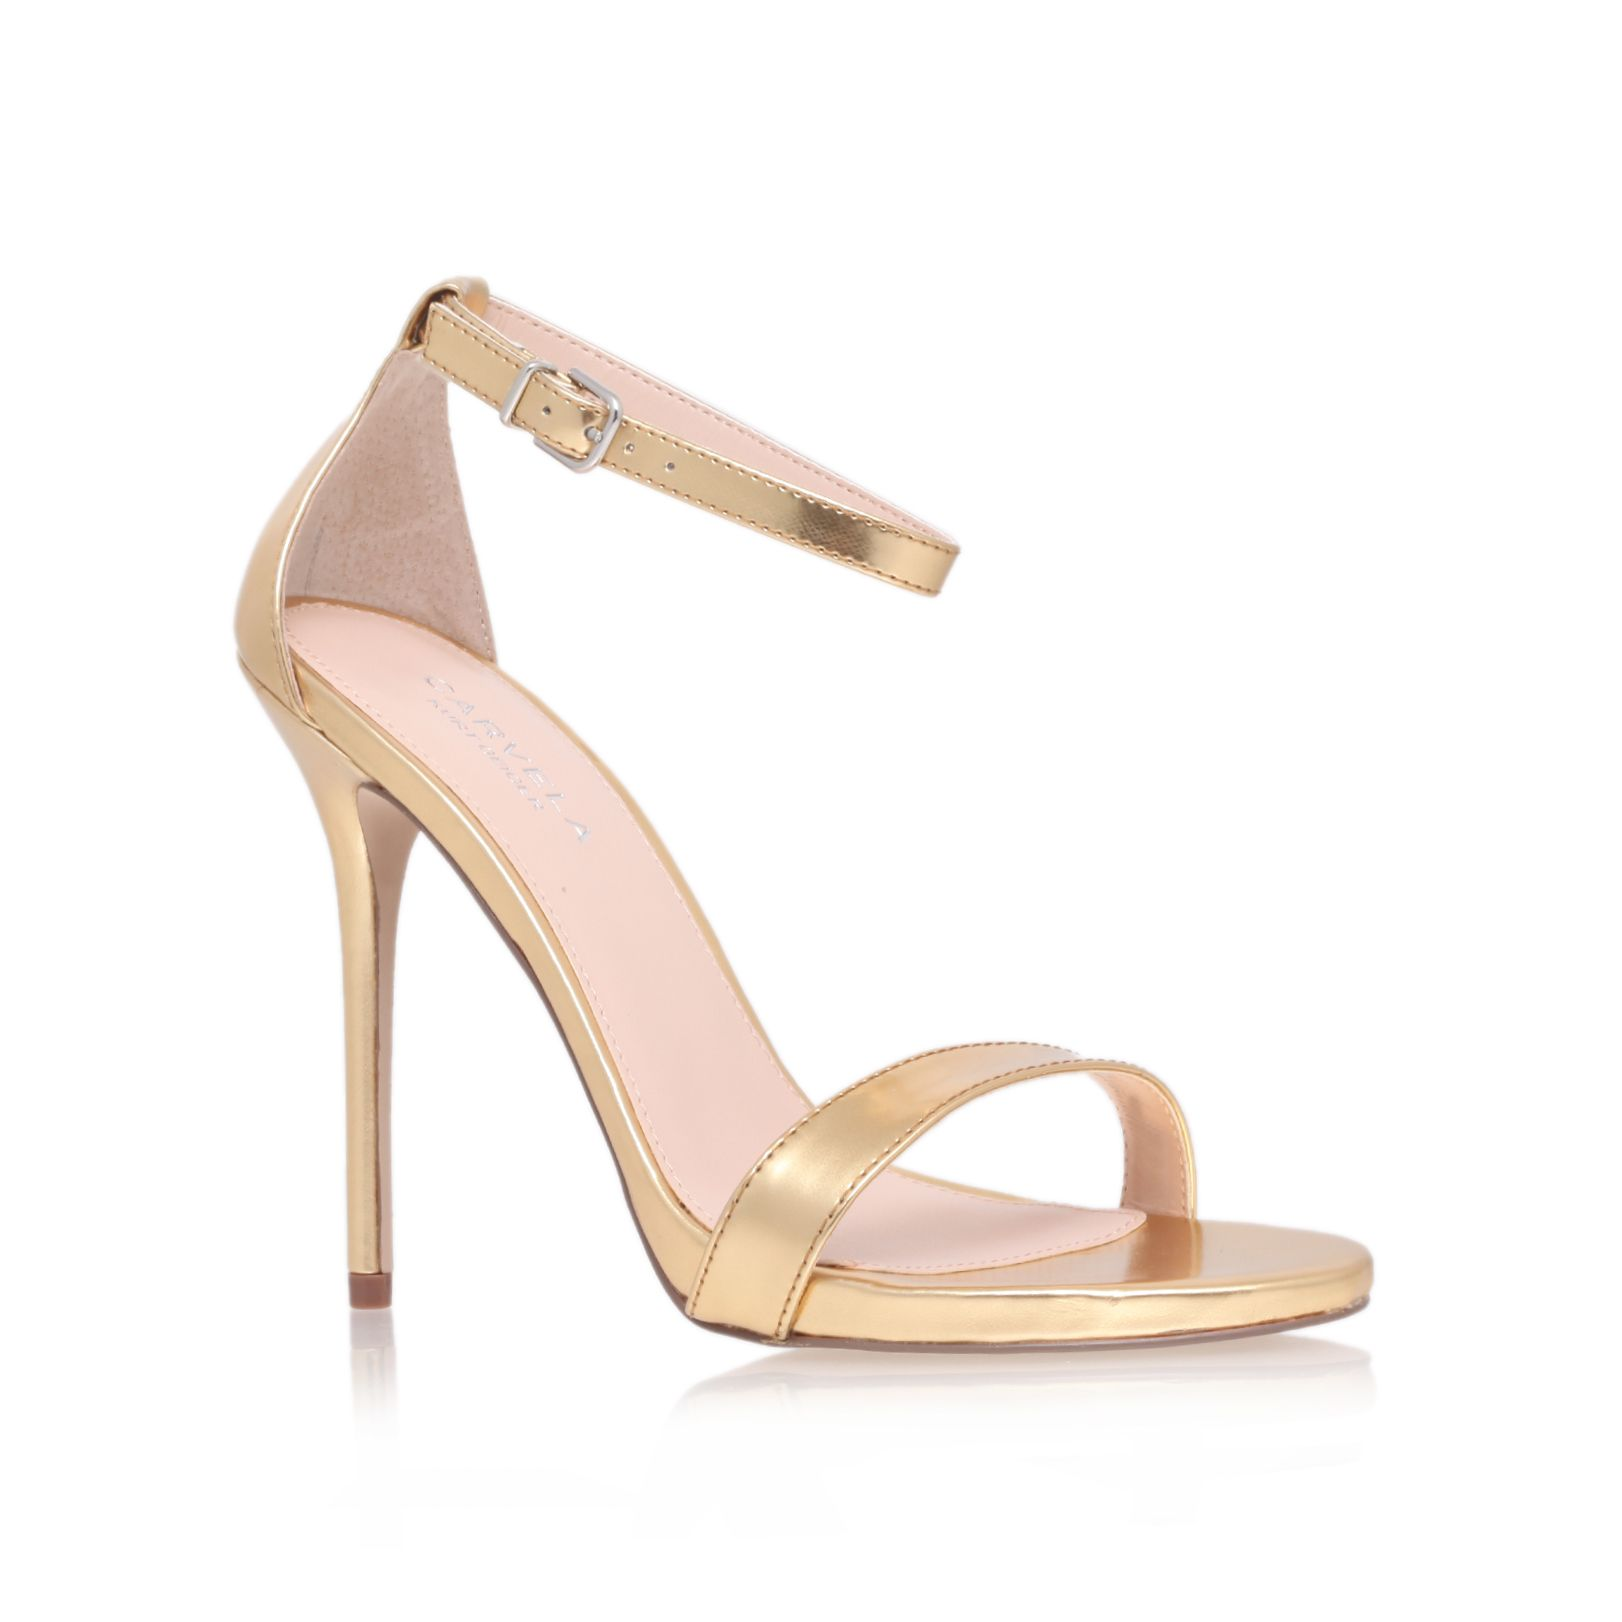 Clacier high heel sandals